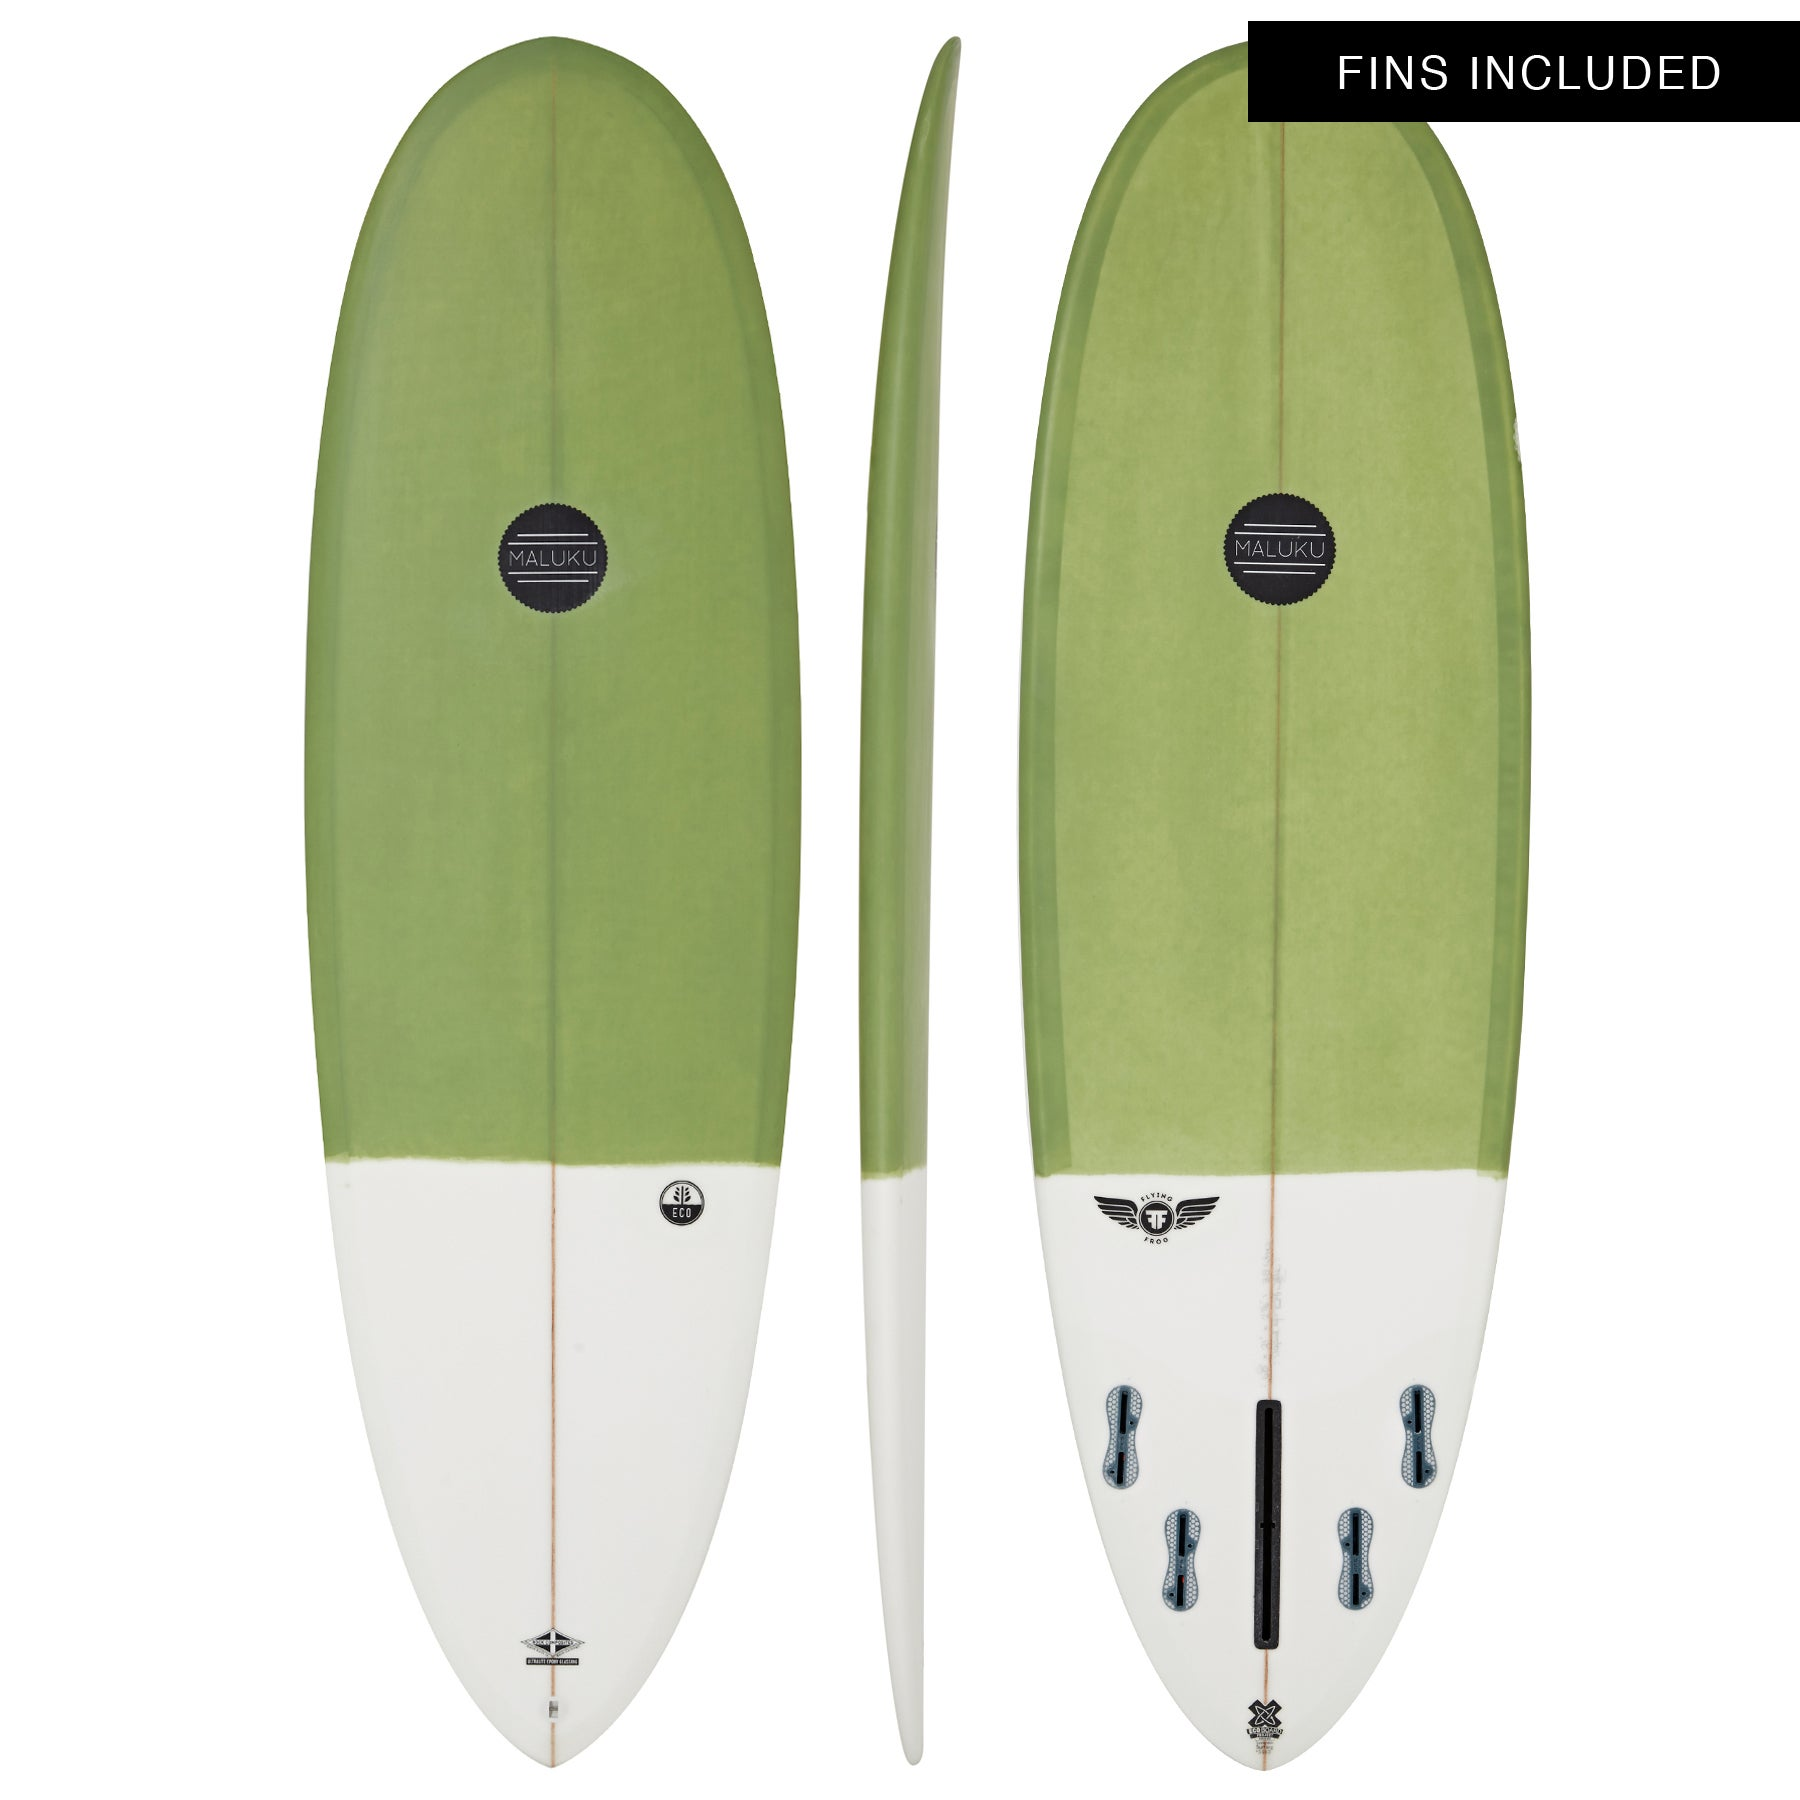 Maluku Flying Frog Eco 5 Fin Surfboard - Green White